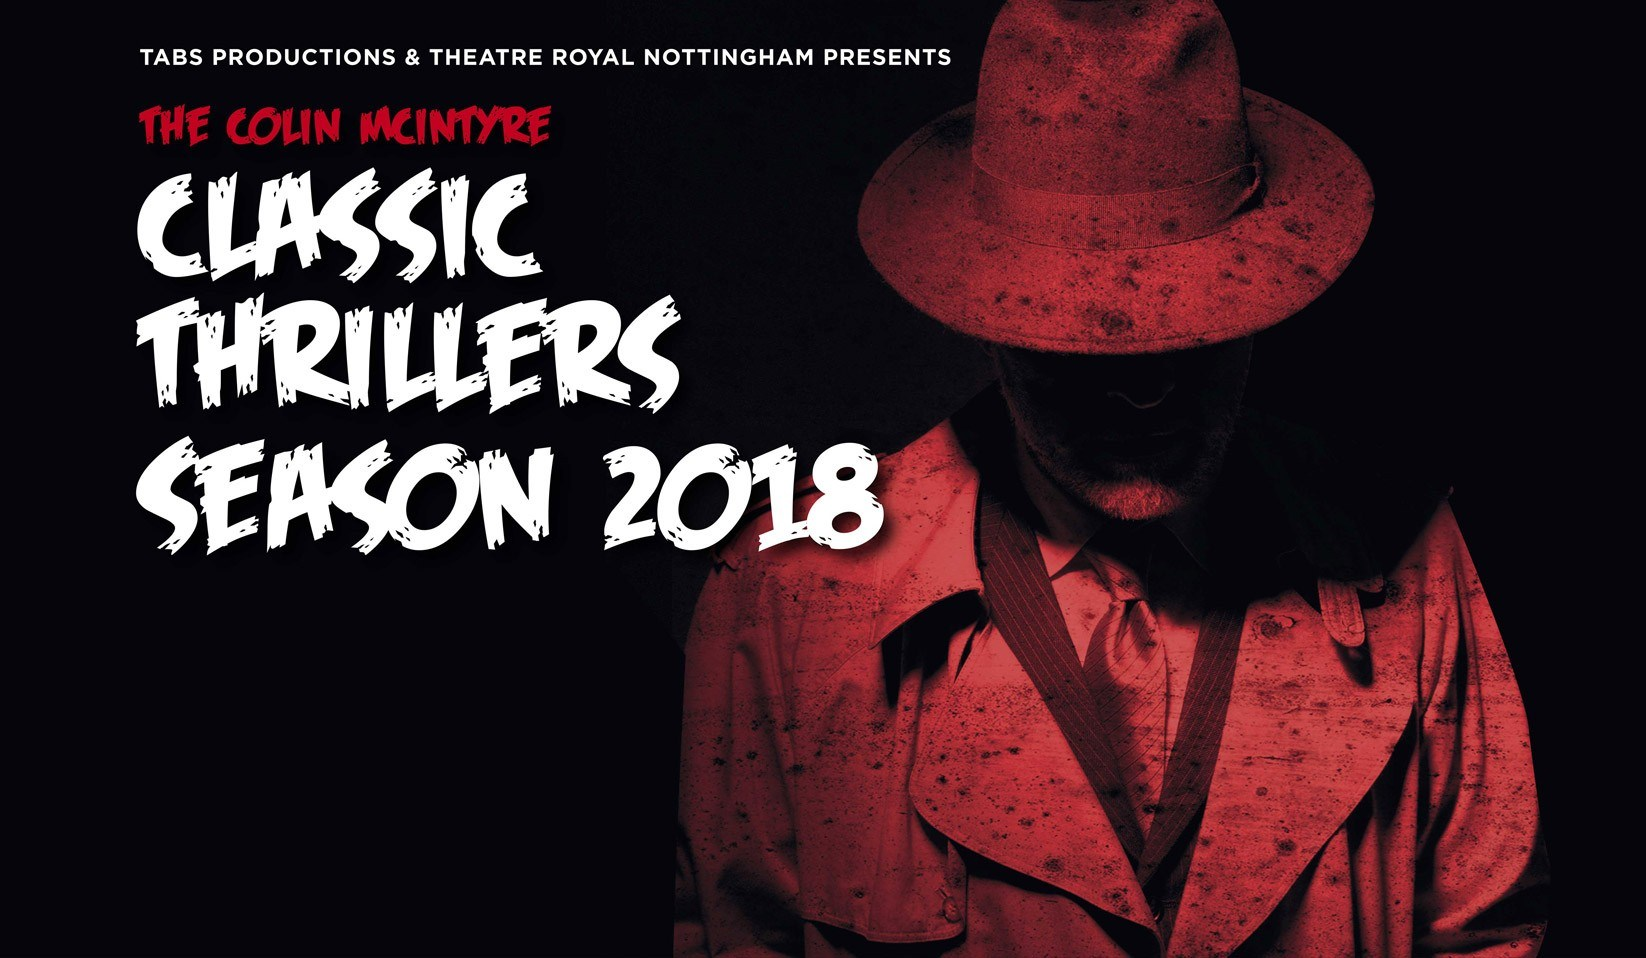 The Classic Thriller Season 2018 poster